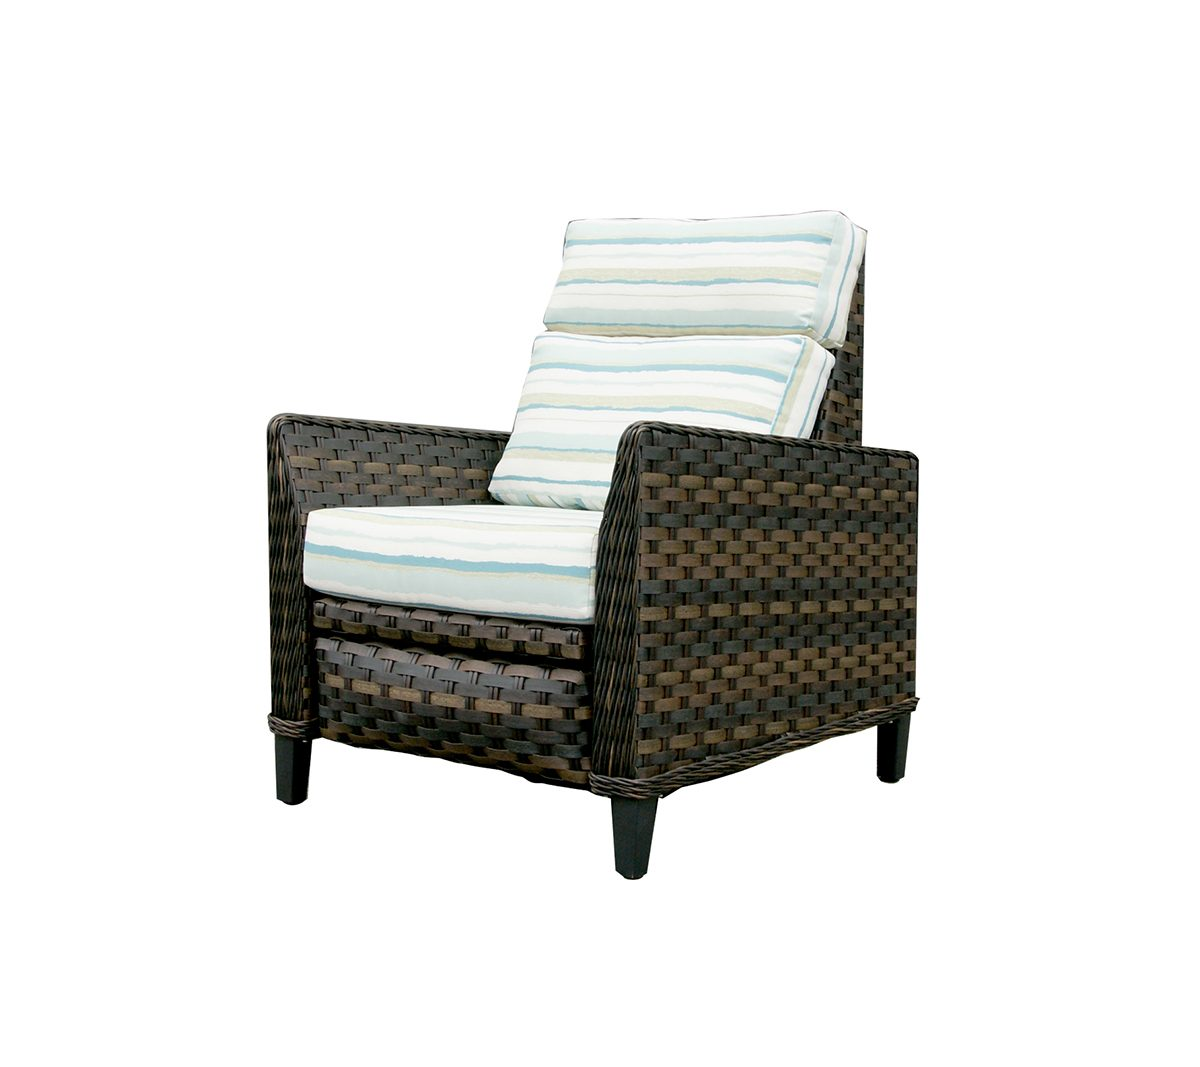 san sebastian recliner | Patio bay